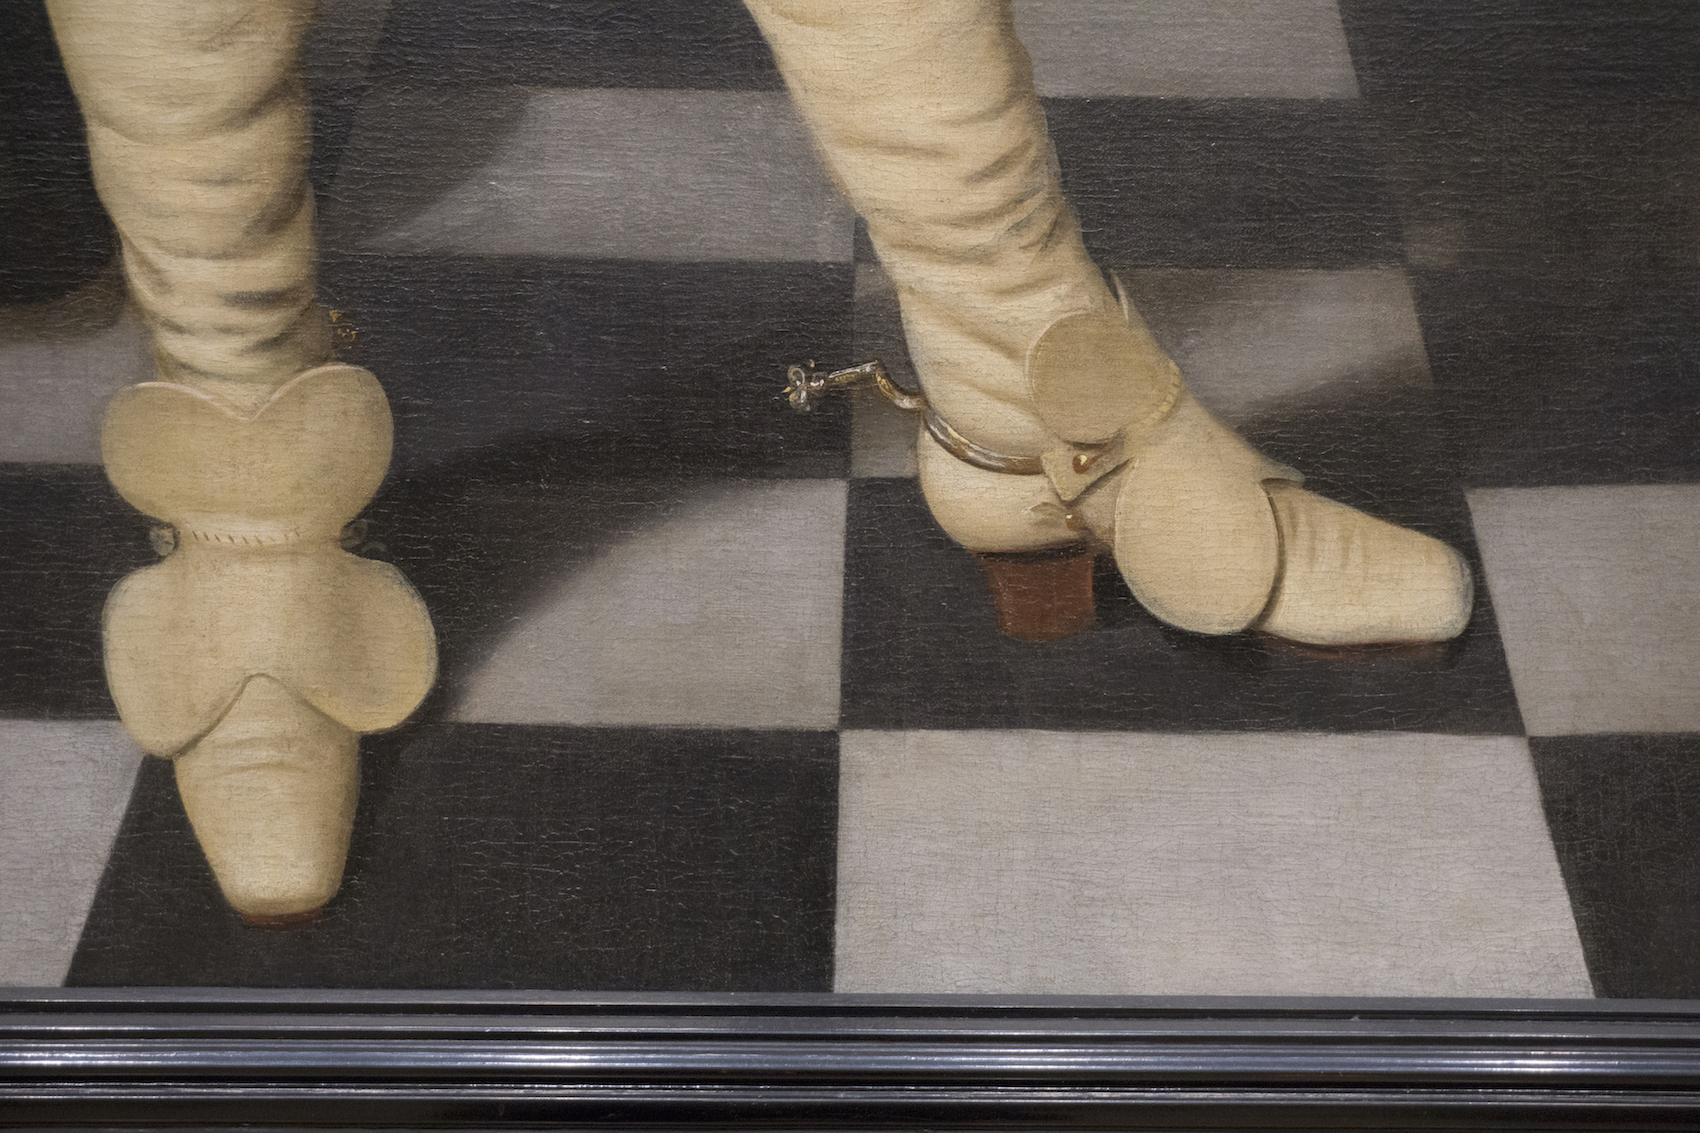 boots Tate museum